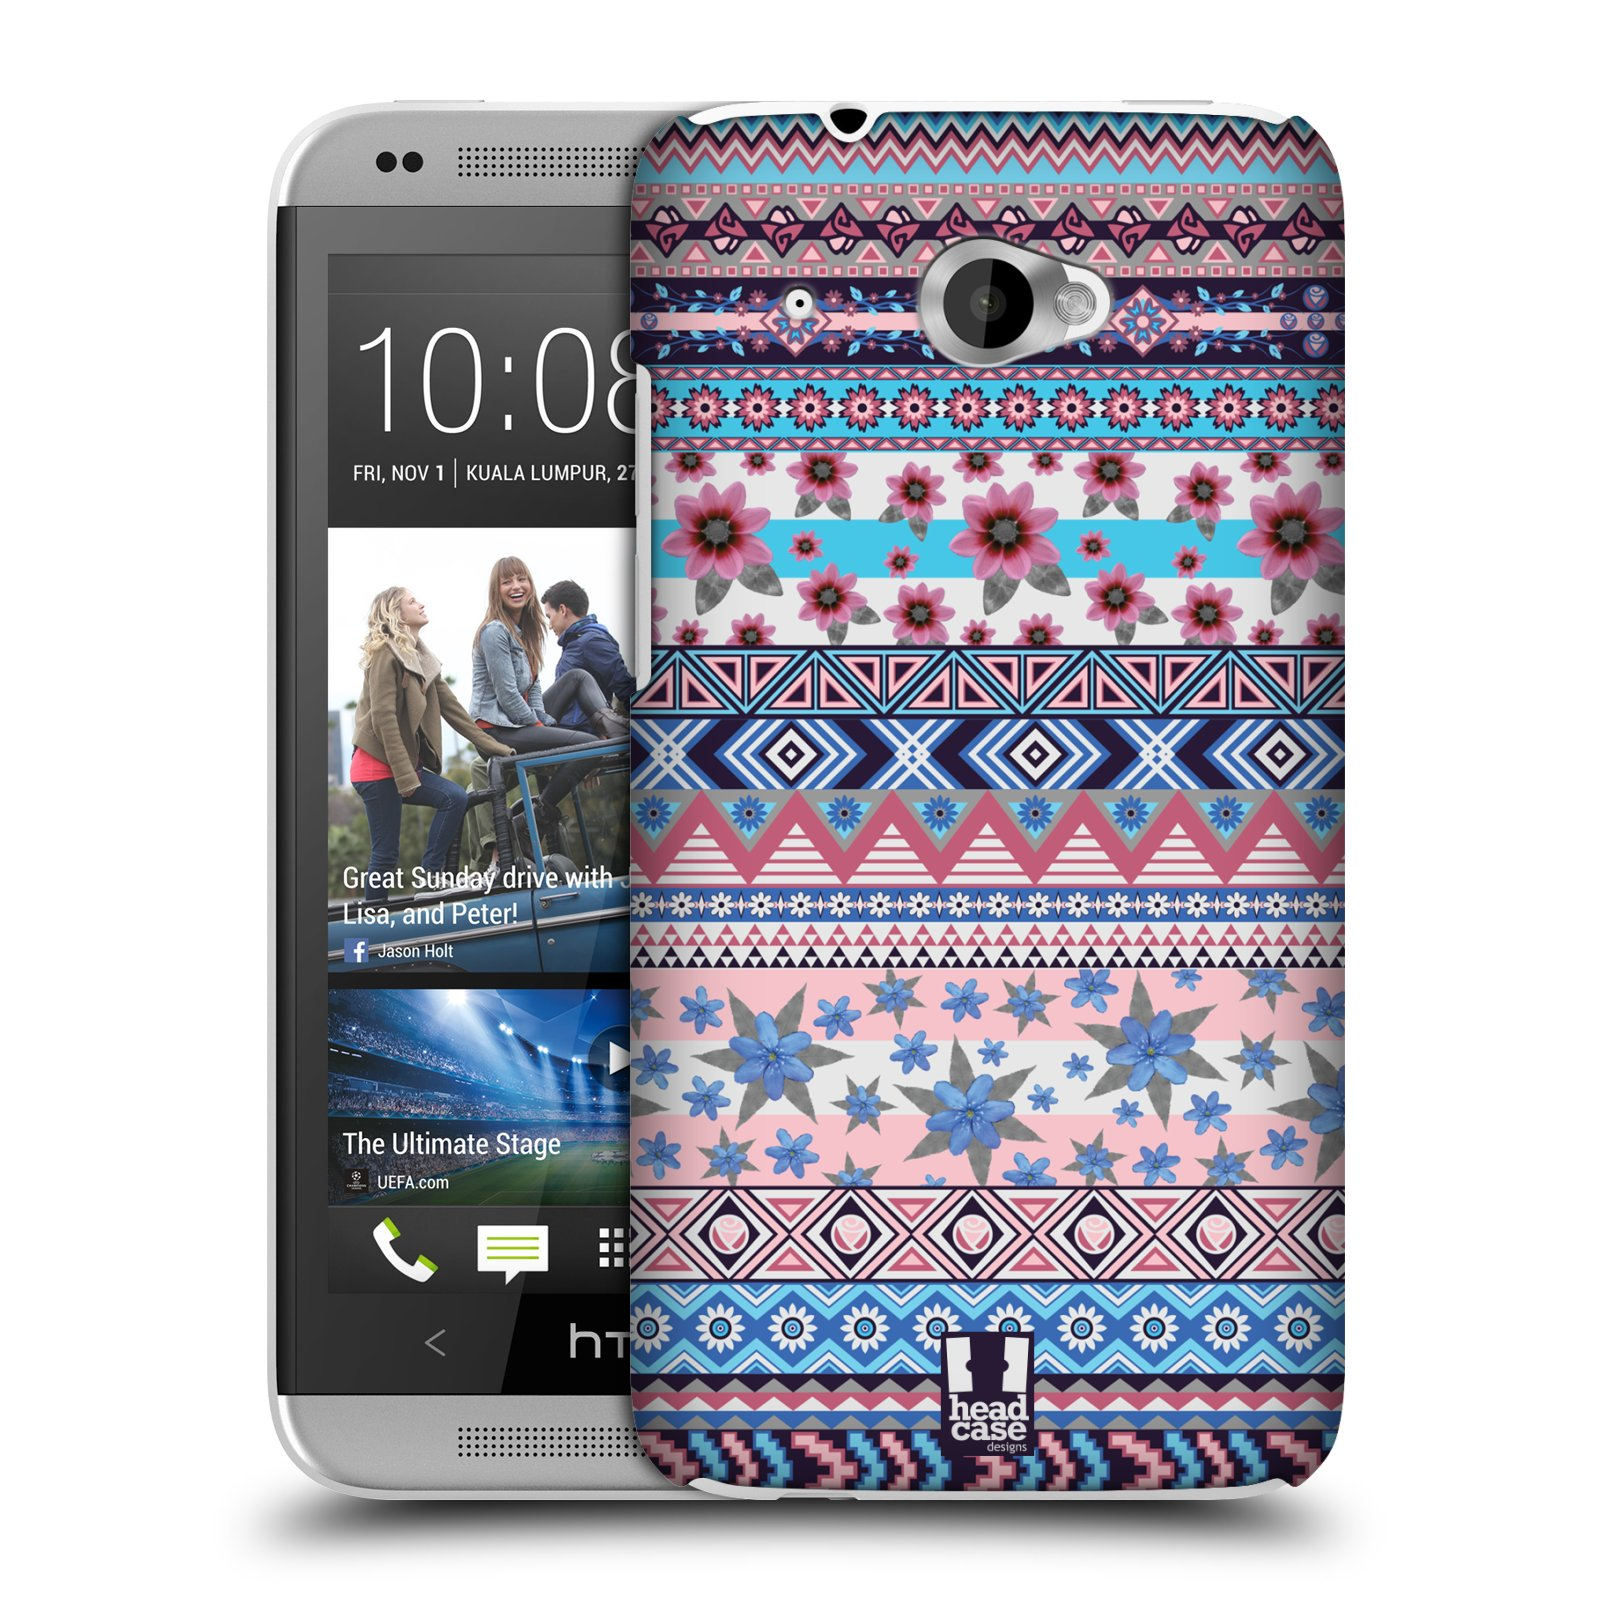 HEAD CASE DESIGNS FLORAL AZTEC CASE COVER FOR HTC DESIRE 601 DUAL SIM